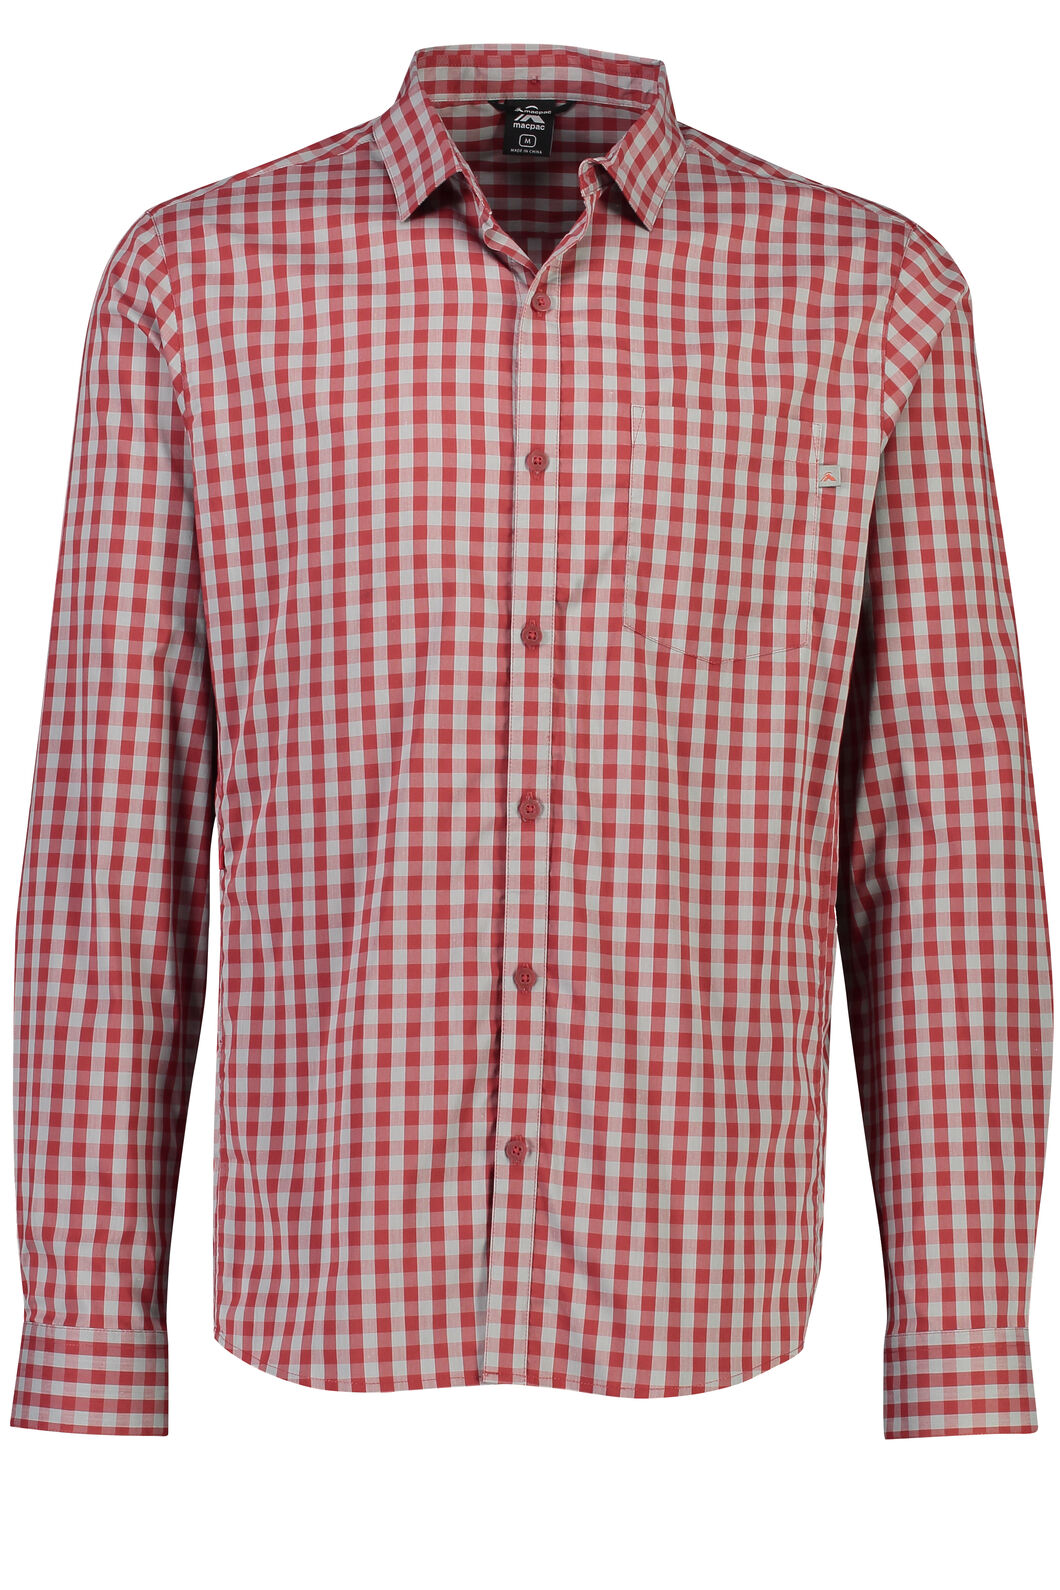 Crossroad Long Sleeve Shirt - Men's, Sundried Tomato, hi-res